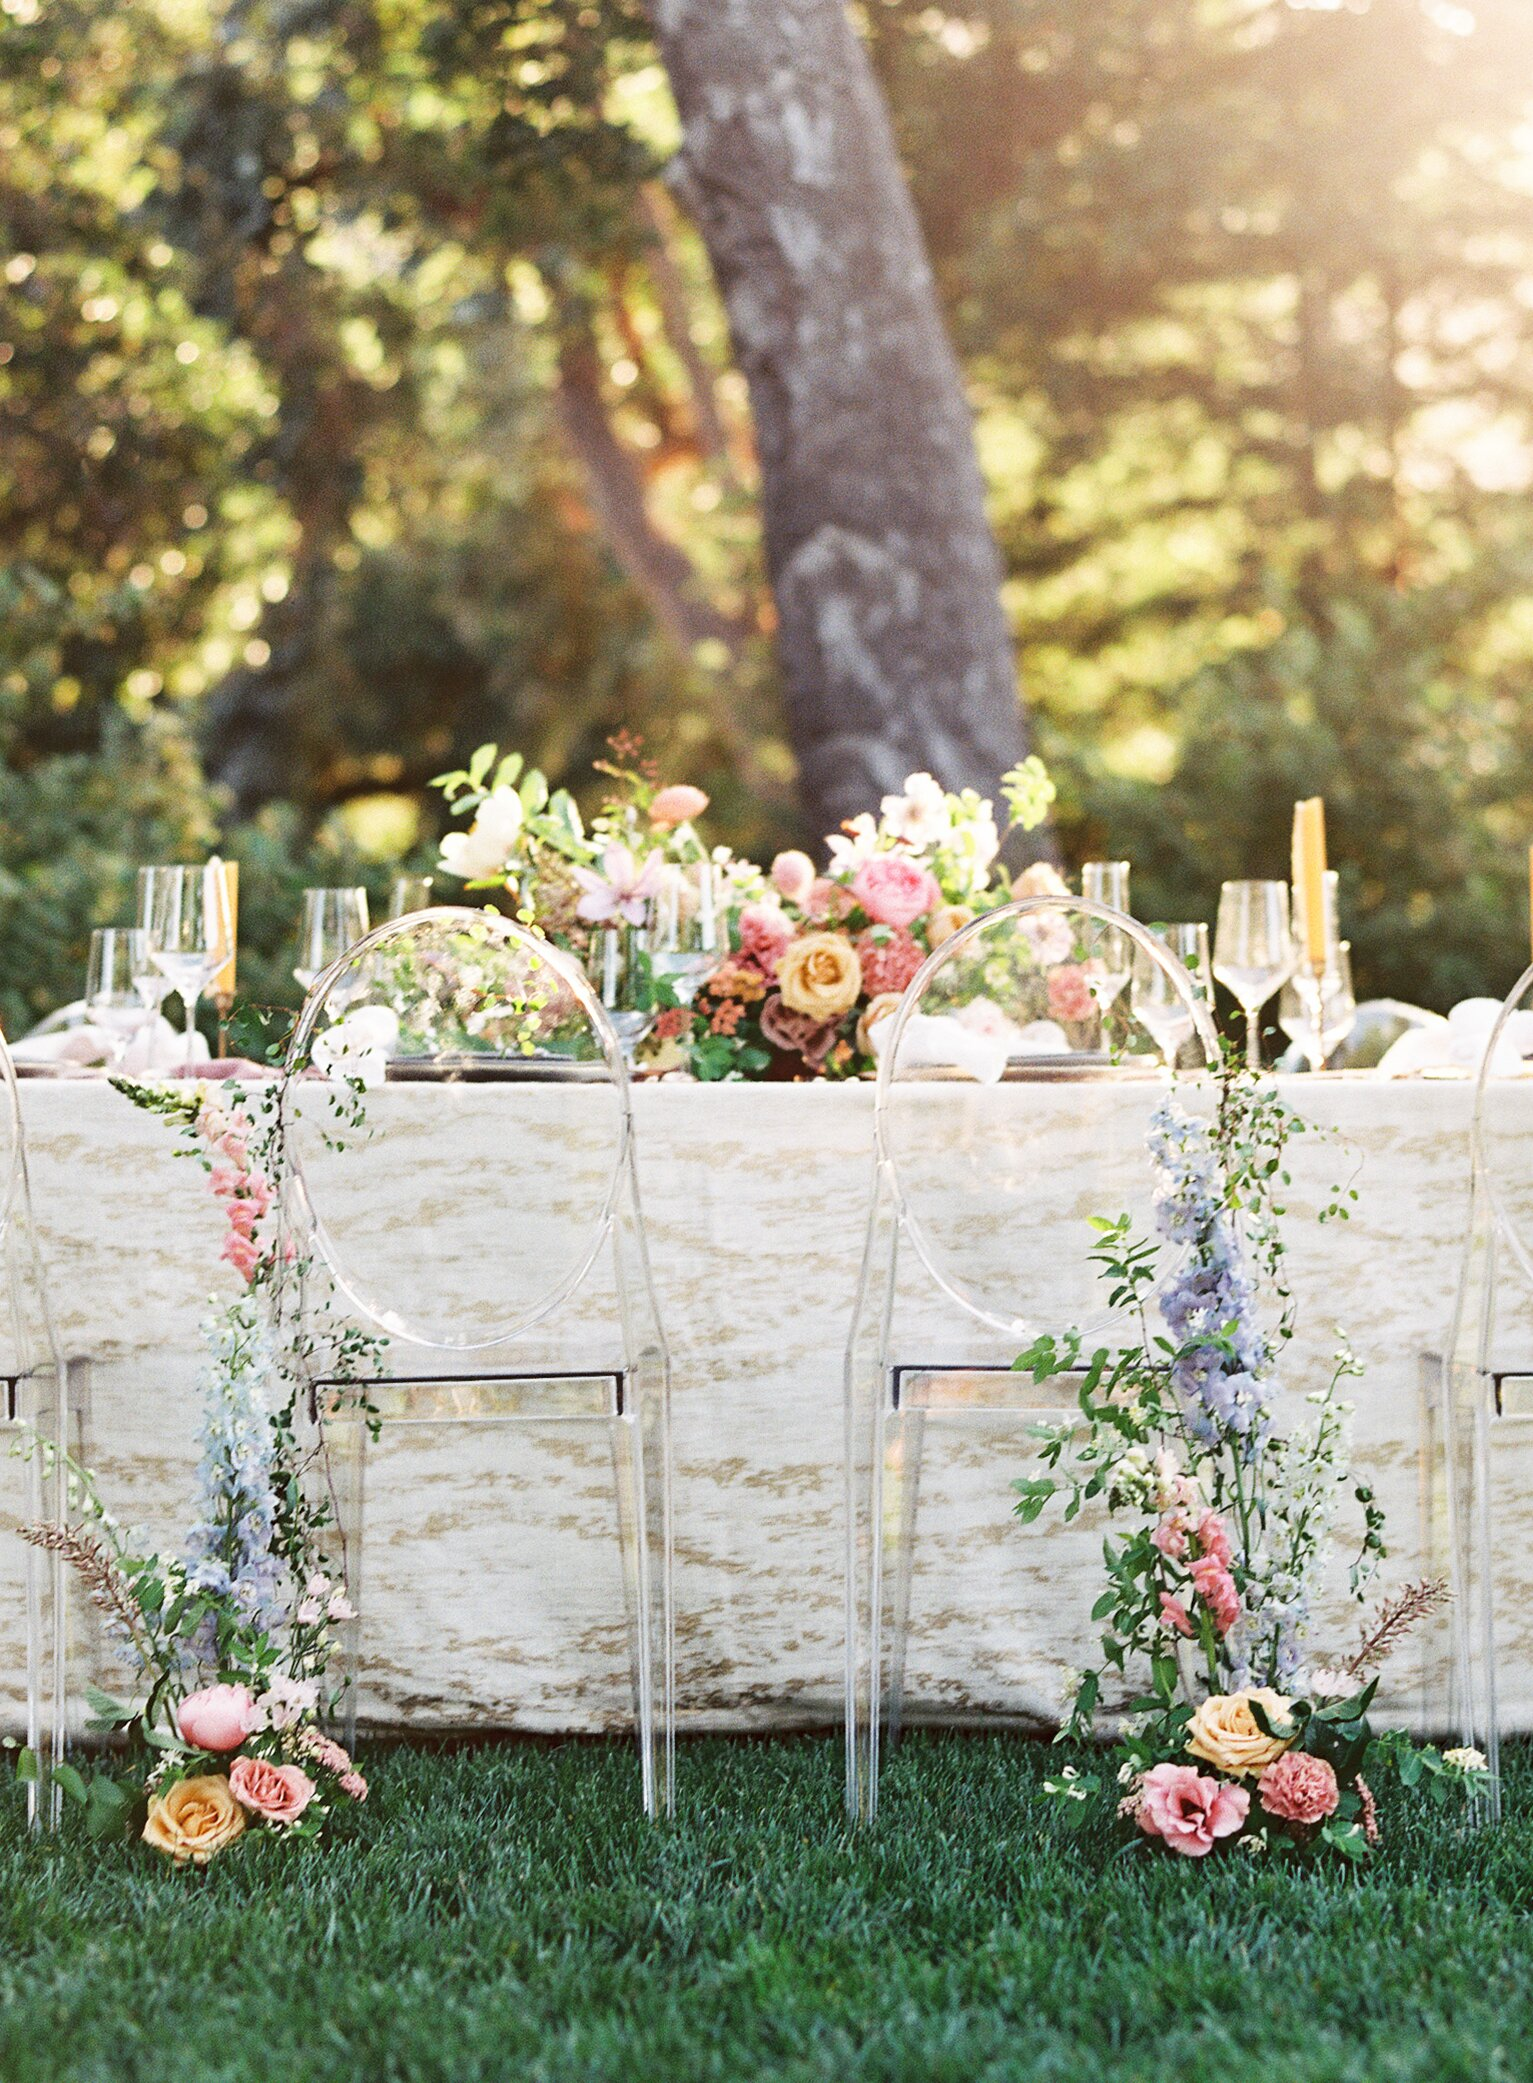 40 Pretty Ways to Decorate Your Wedding Chairs | Martha Stewart ...